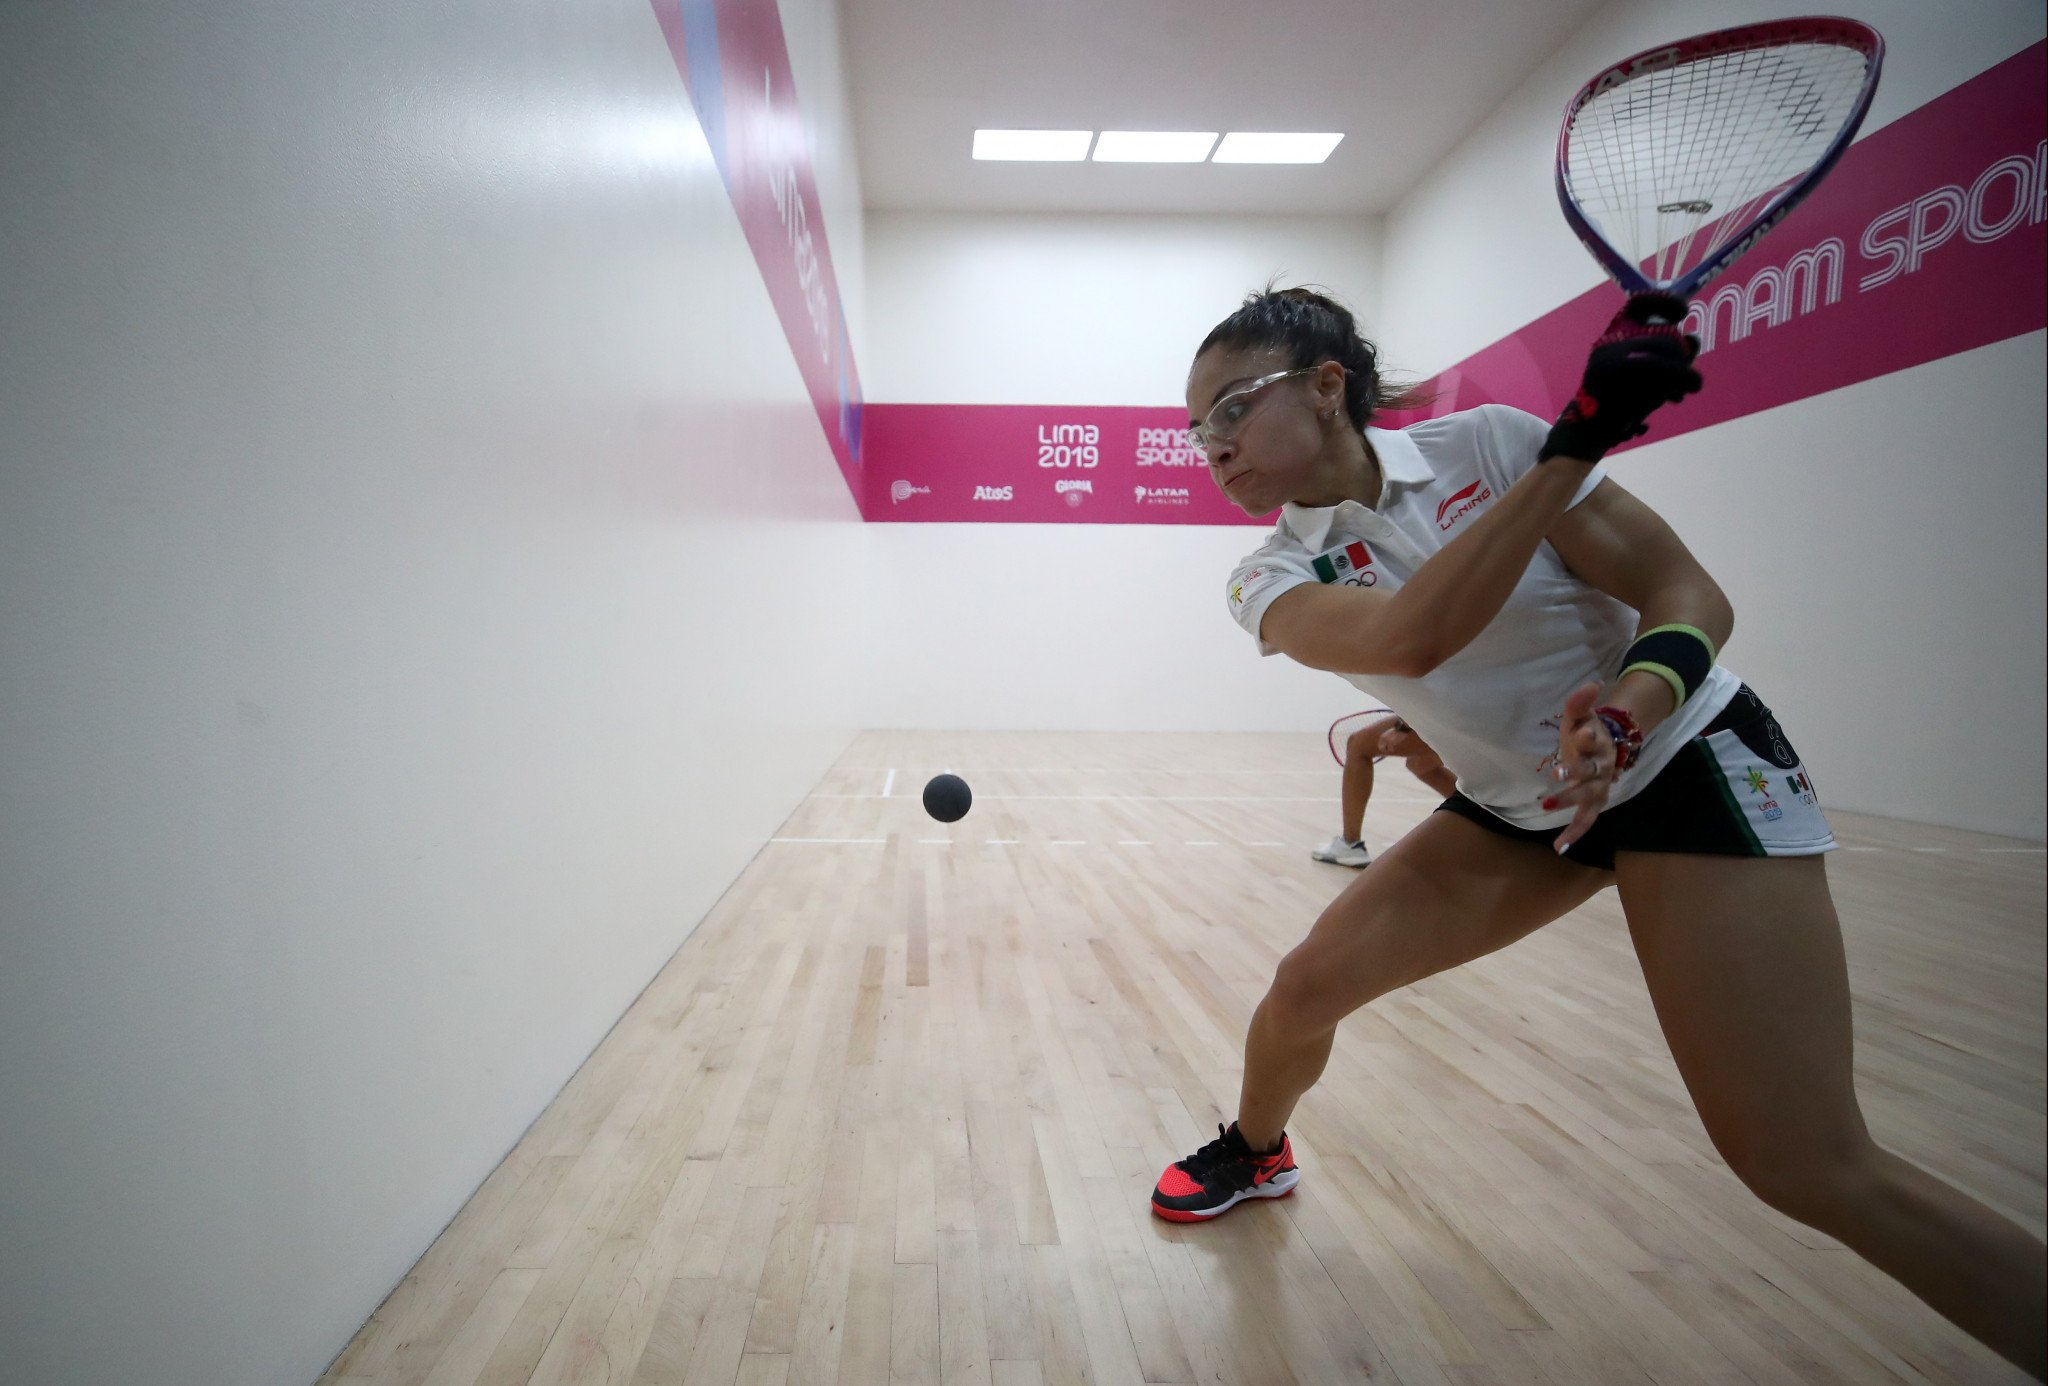 Mexican racquetball star Paola Longoria sits just outside the top three in the voting so far ©Getty Images